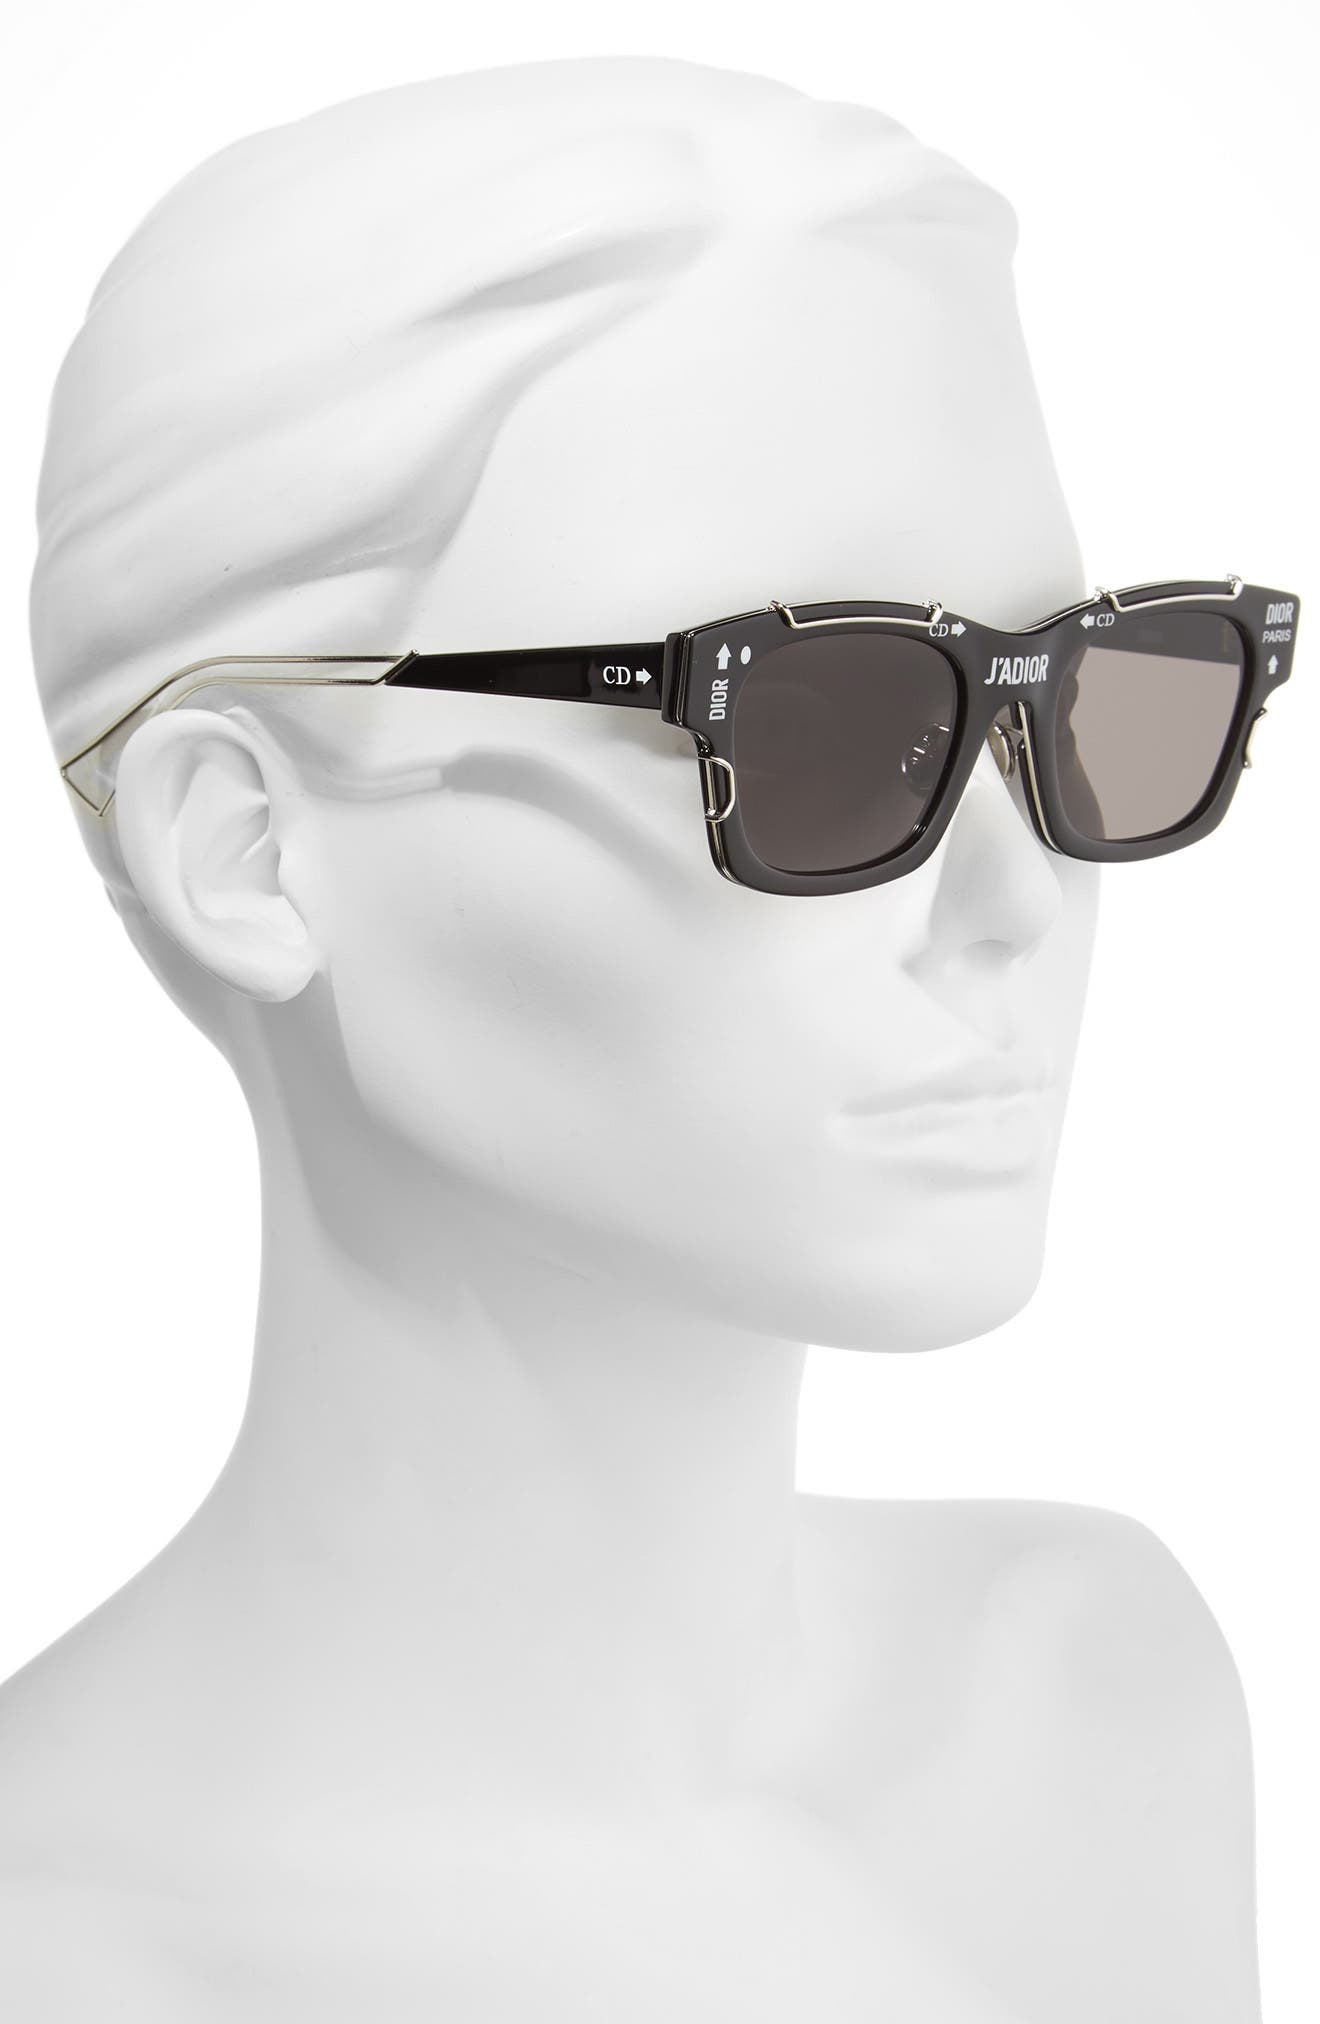 J'Adior 51mm Sunglasses,                             Alternate thumbnail 2, color,                             Black/ Palladium